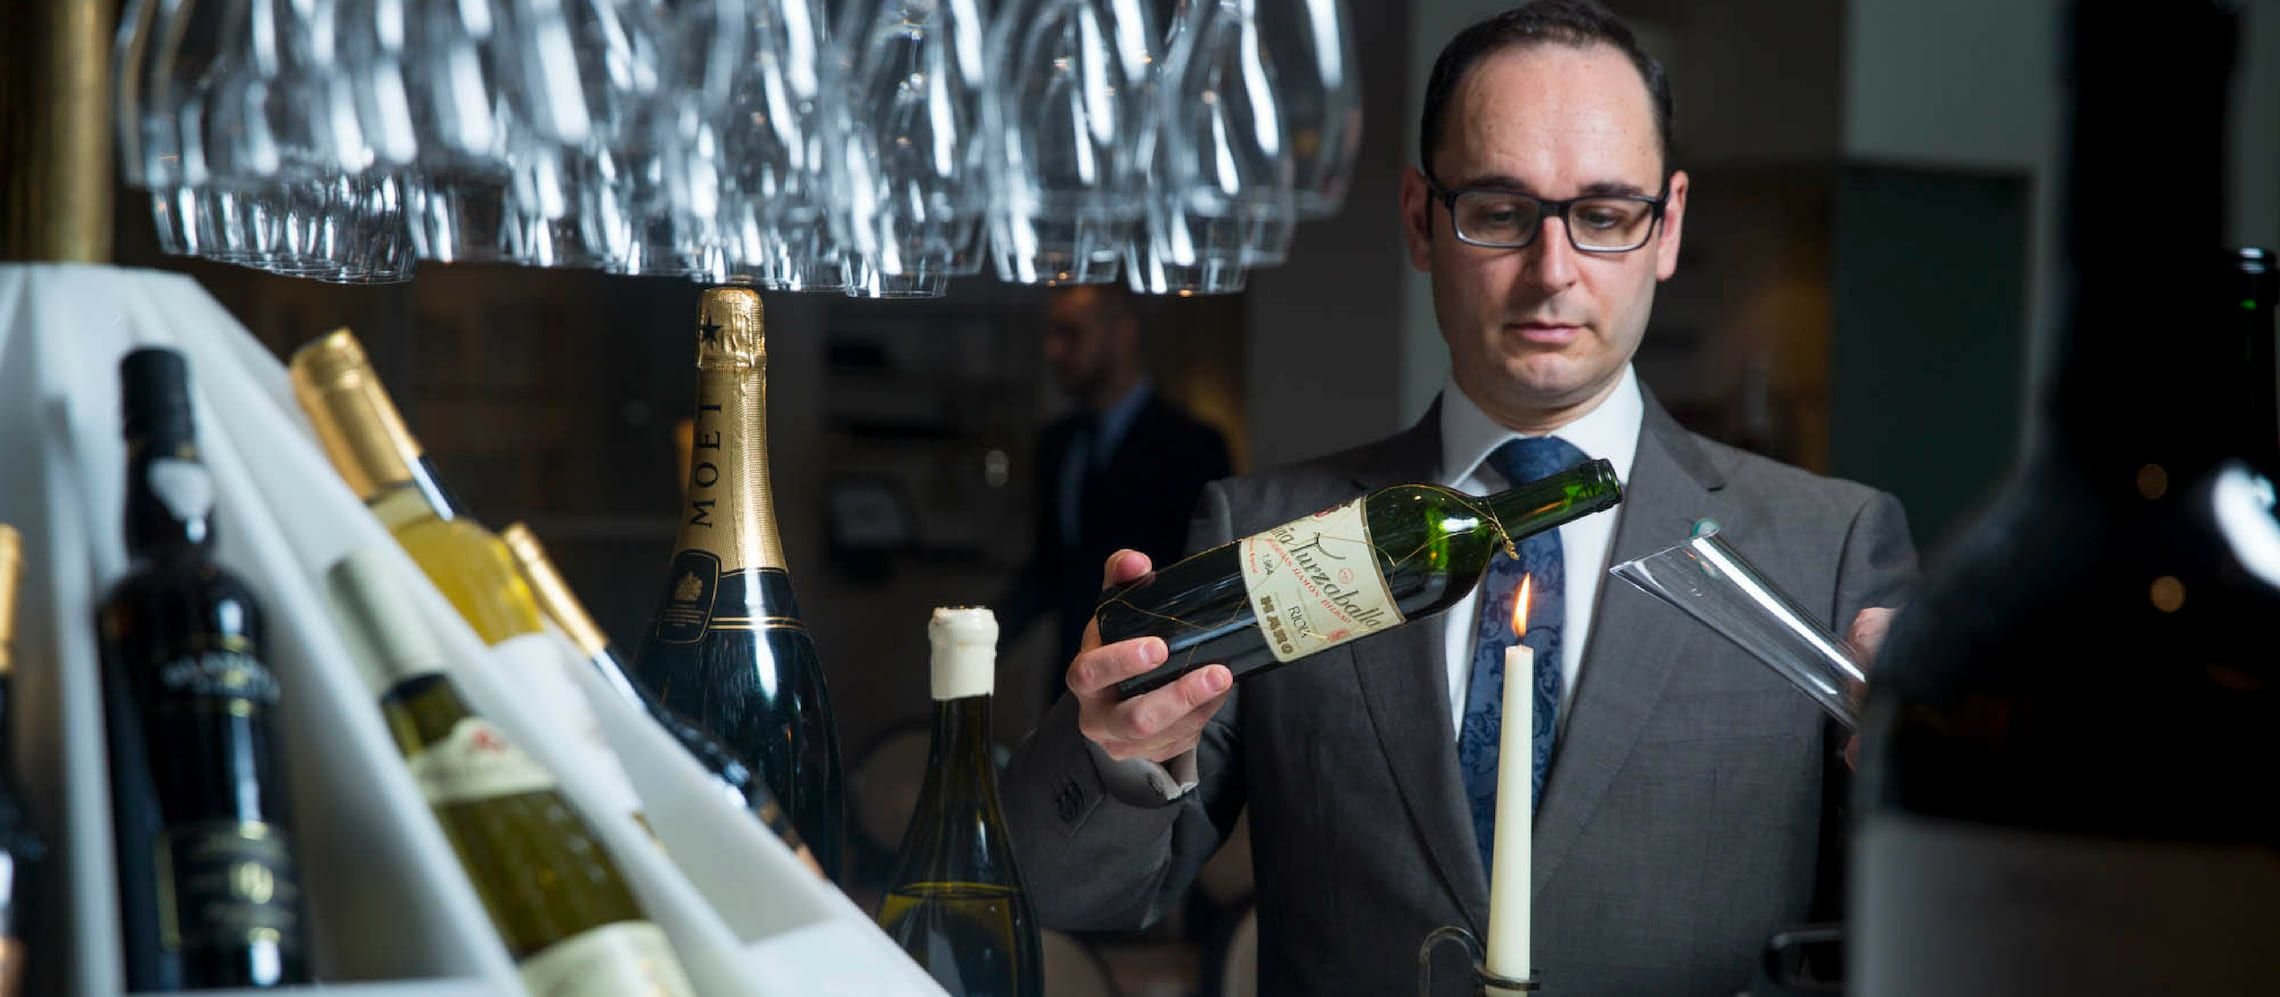 Photo for: Insights from Augustin Trapero, Head Sommelier at Avenue, London